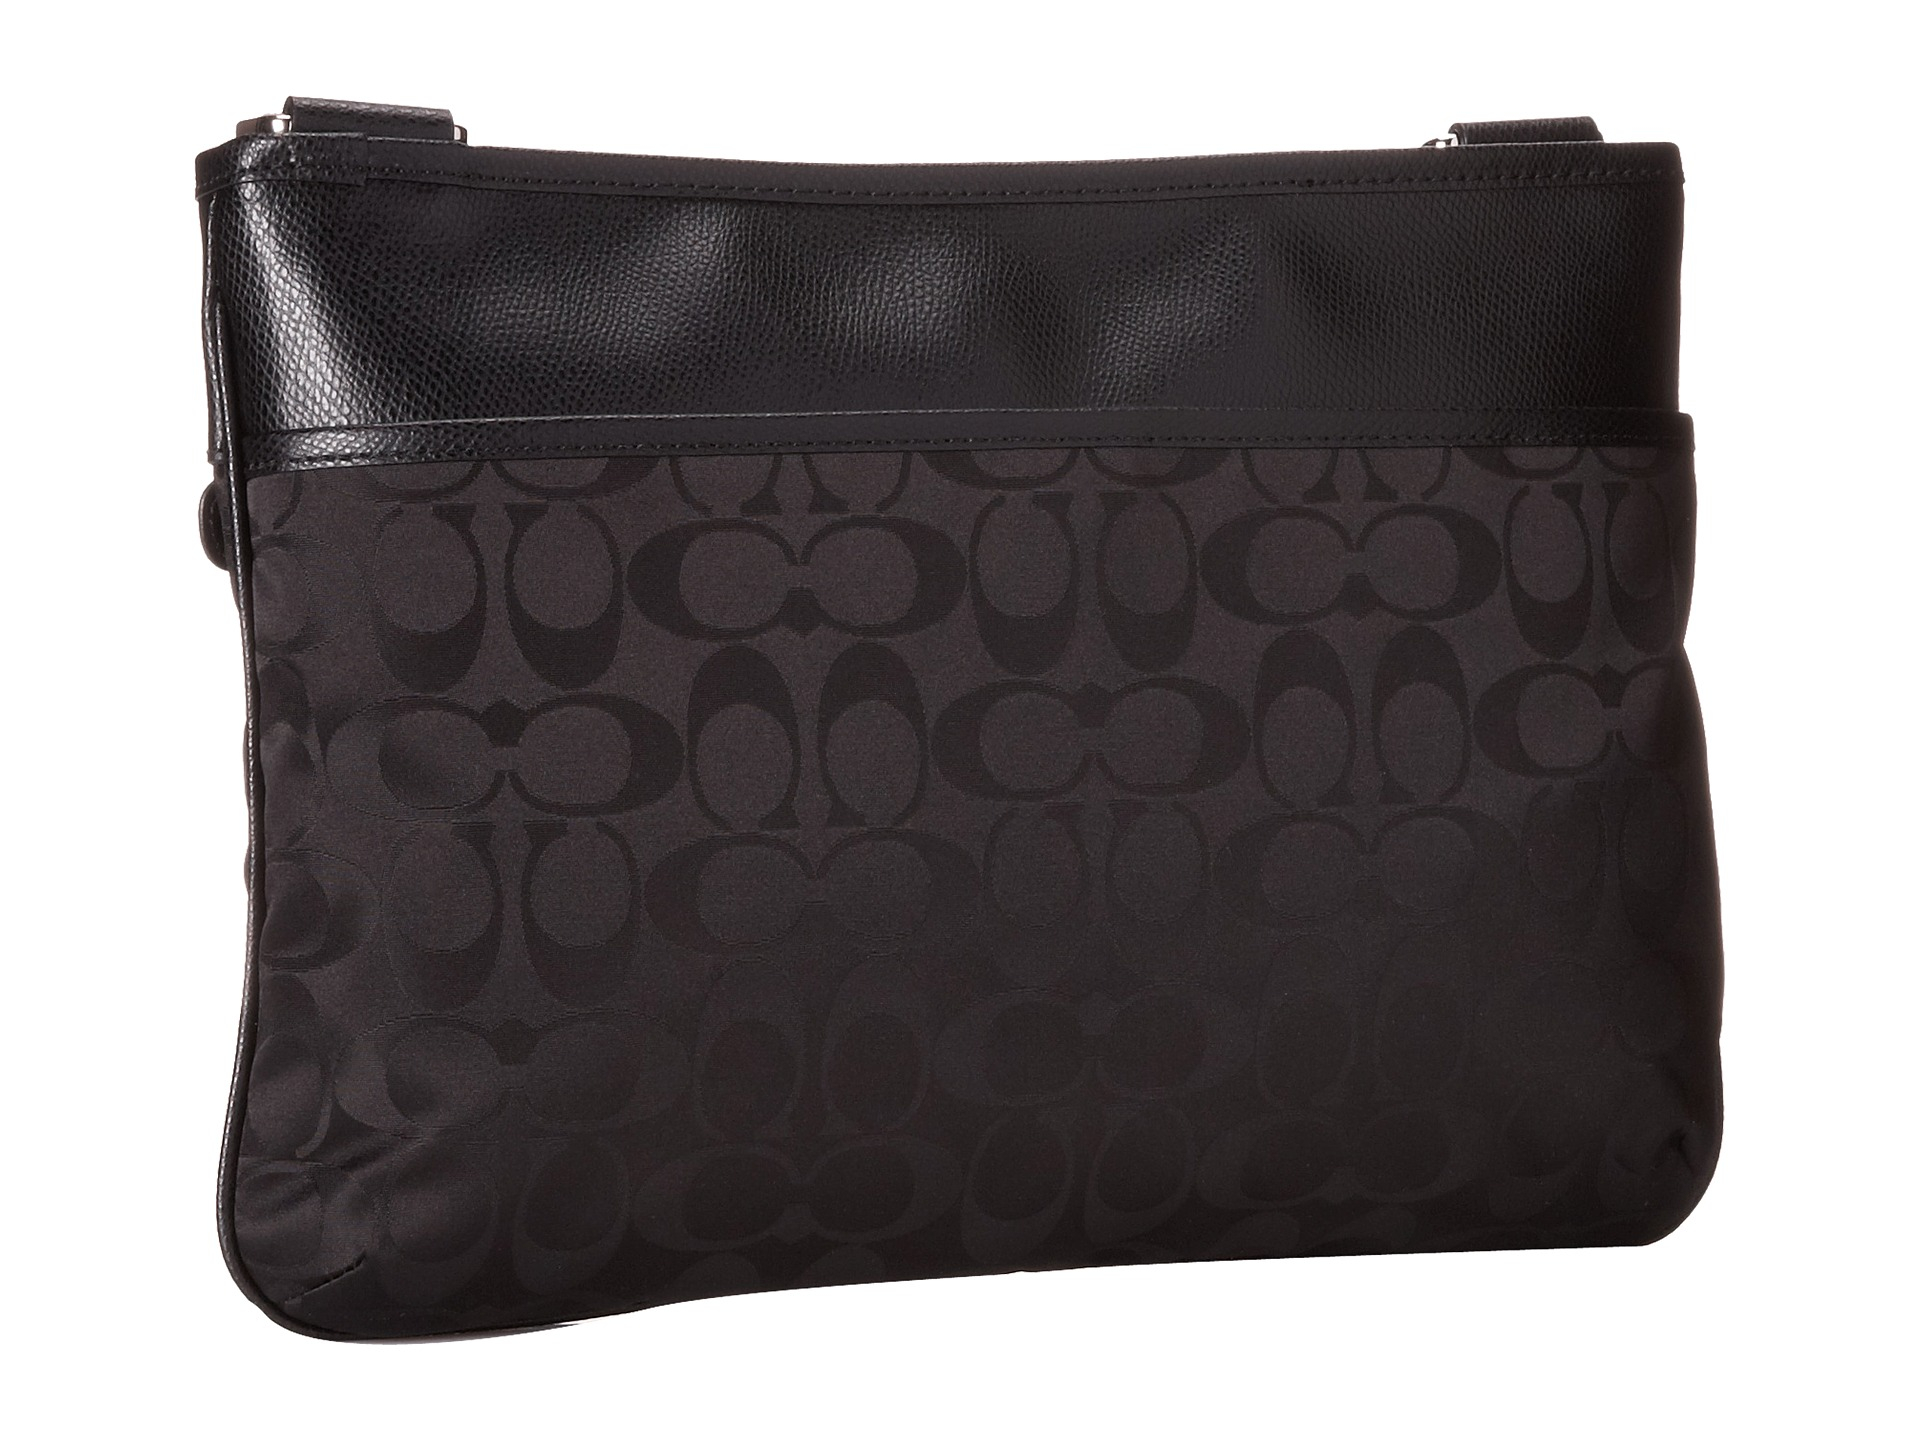 ... promo code lyst coach signature nylon spencer crossbody in black afec8  e905f 47e6a5bd7c7bd